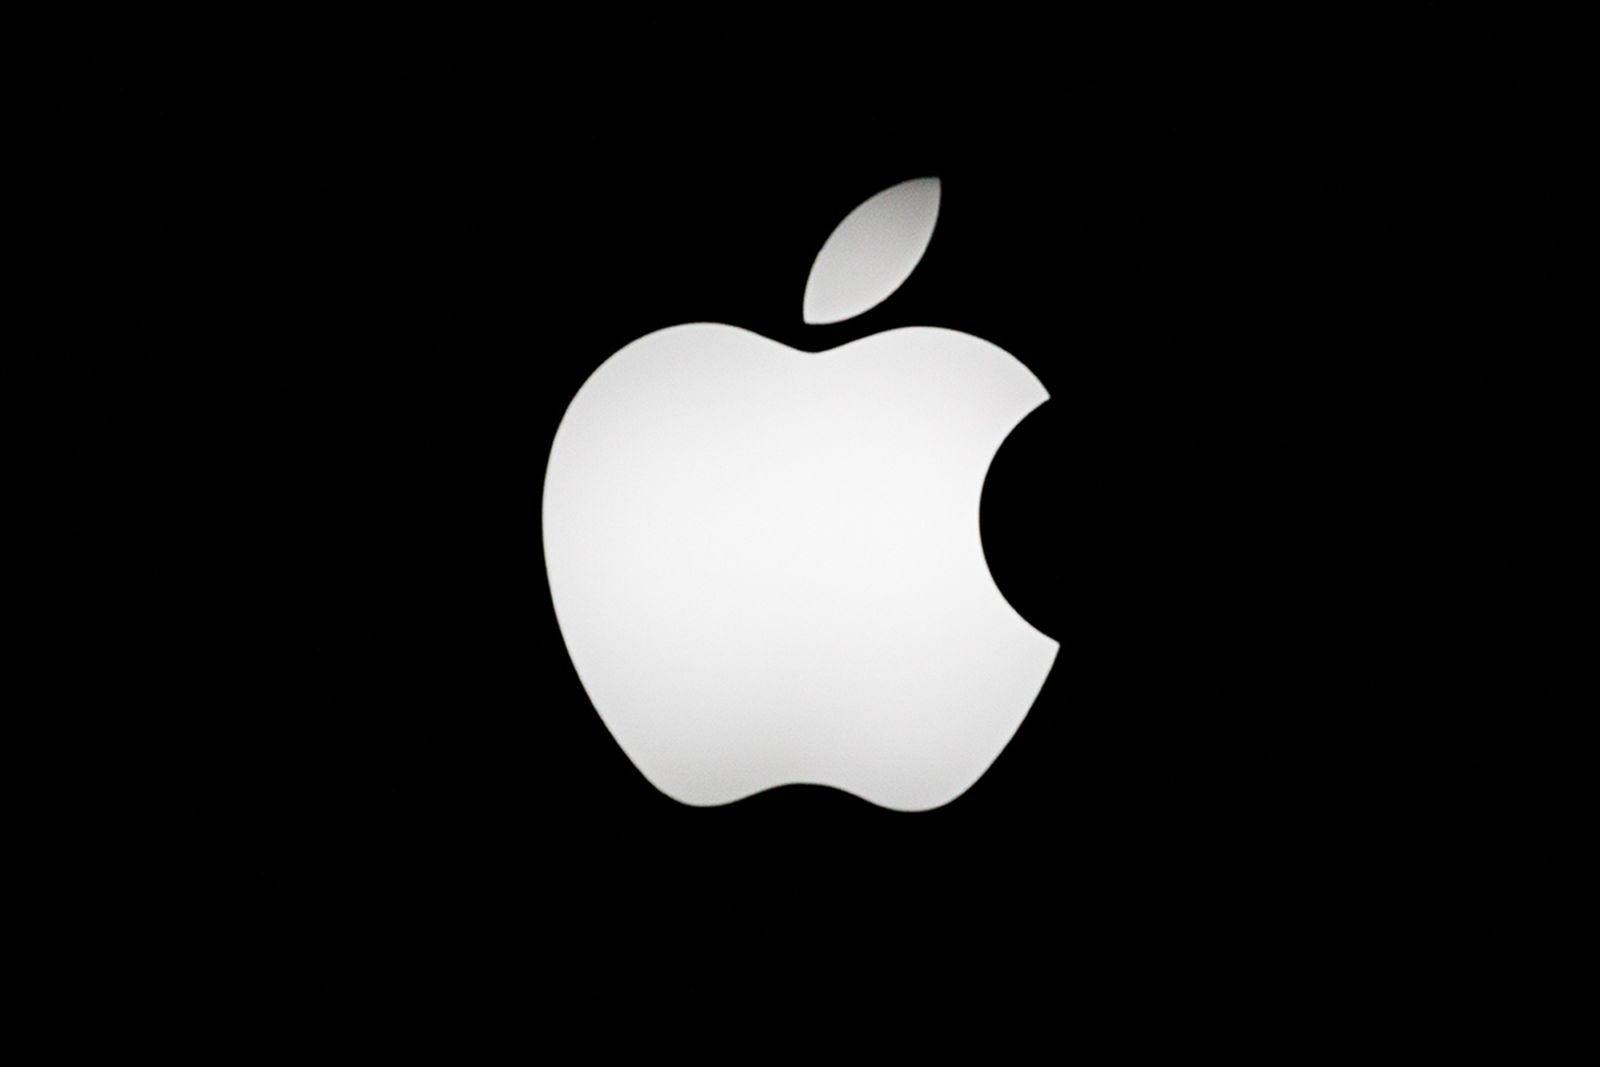 apple ar glasses release augmented reality